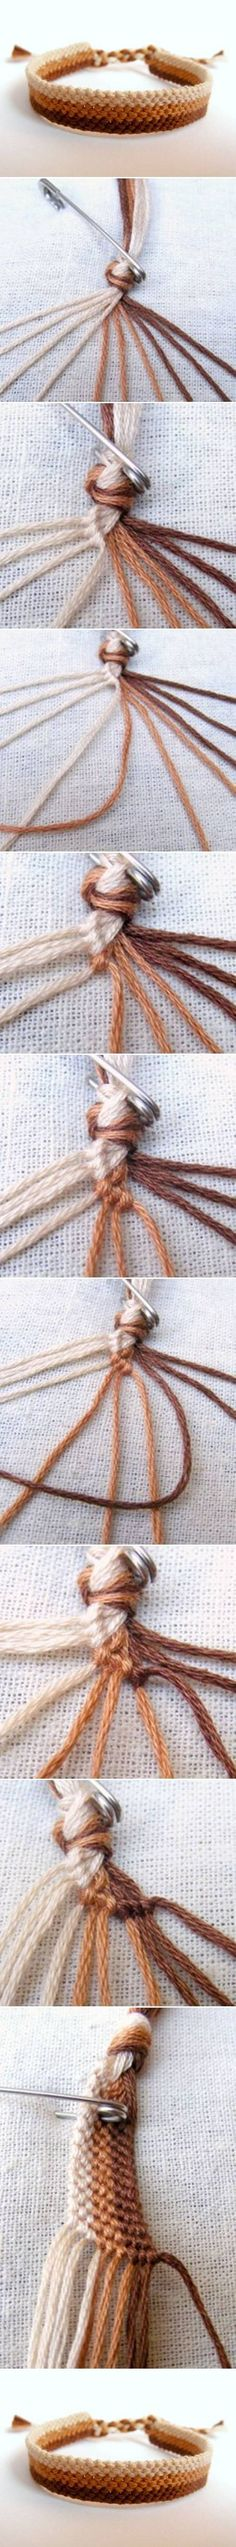 DIY Easy Weave Bracelet DIY Projects / UsefulDIY.com on imgfave